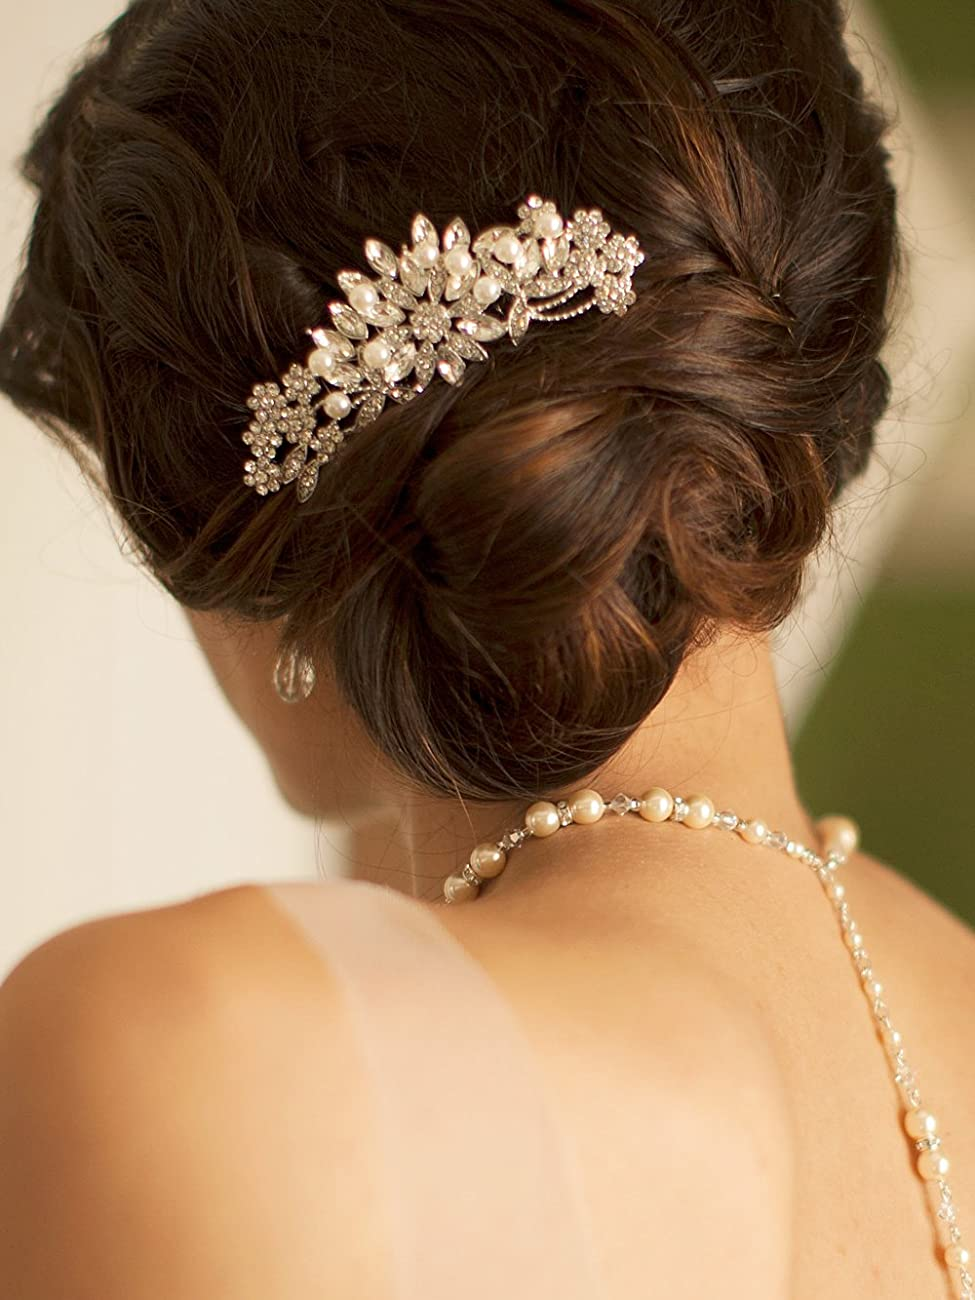 Mariell Vintage Pearl and Mixed Crystal Sunburst Wedding, Bridal or Prom Hair Comb - Retro Glam 3